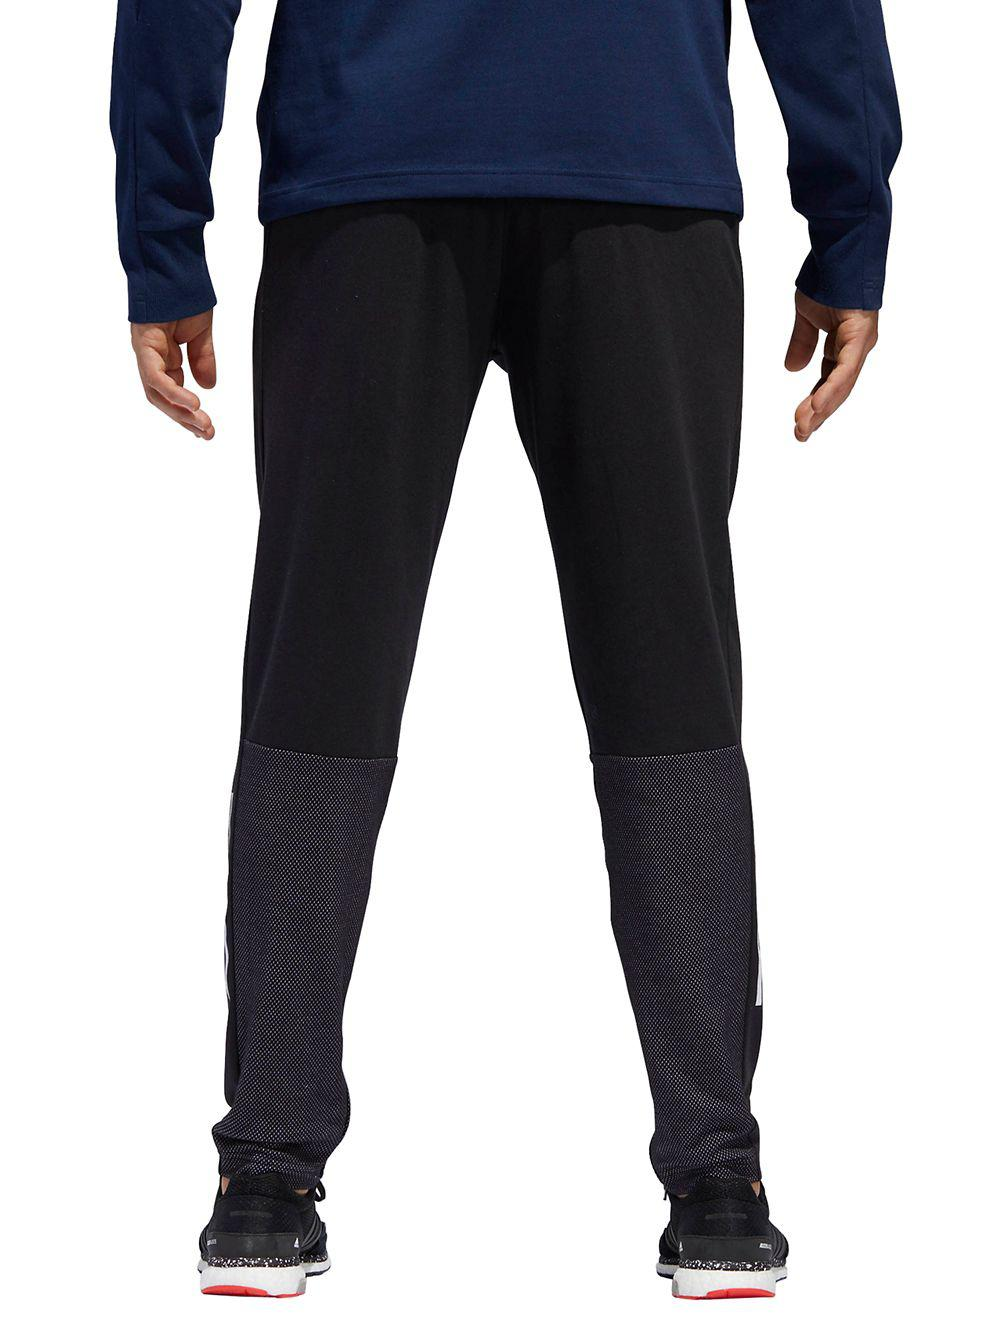 finest selection 842a1 17f95 Adidas Sport 2 Street Lifestyle Pants in Black for Men - Lyst